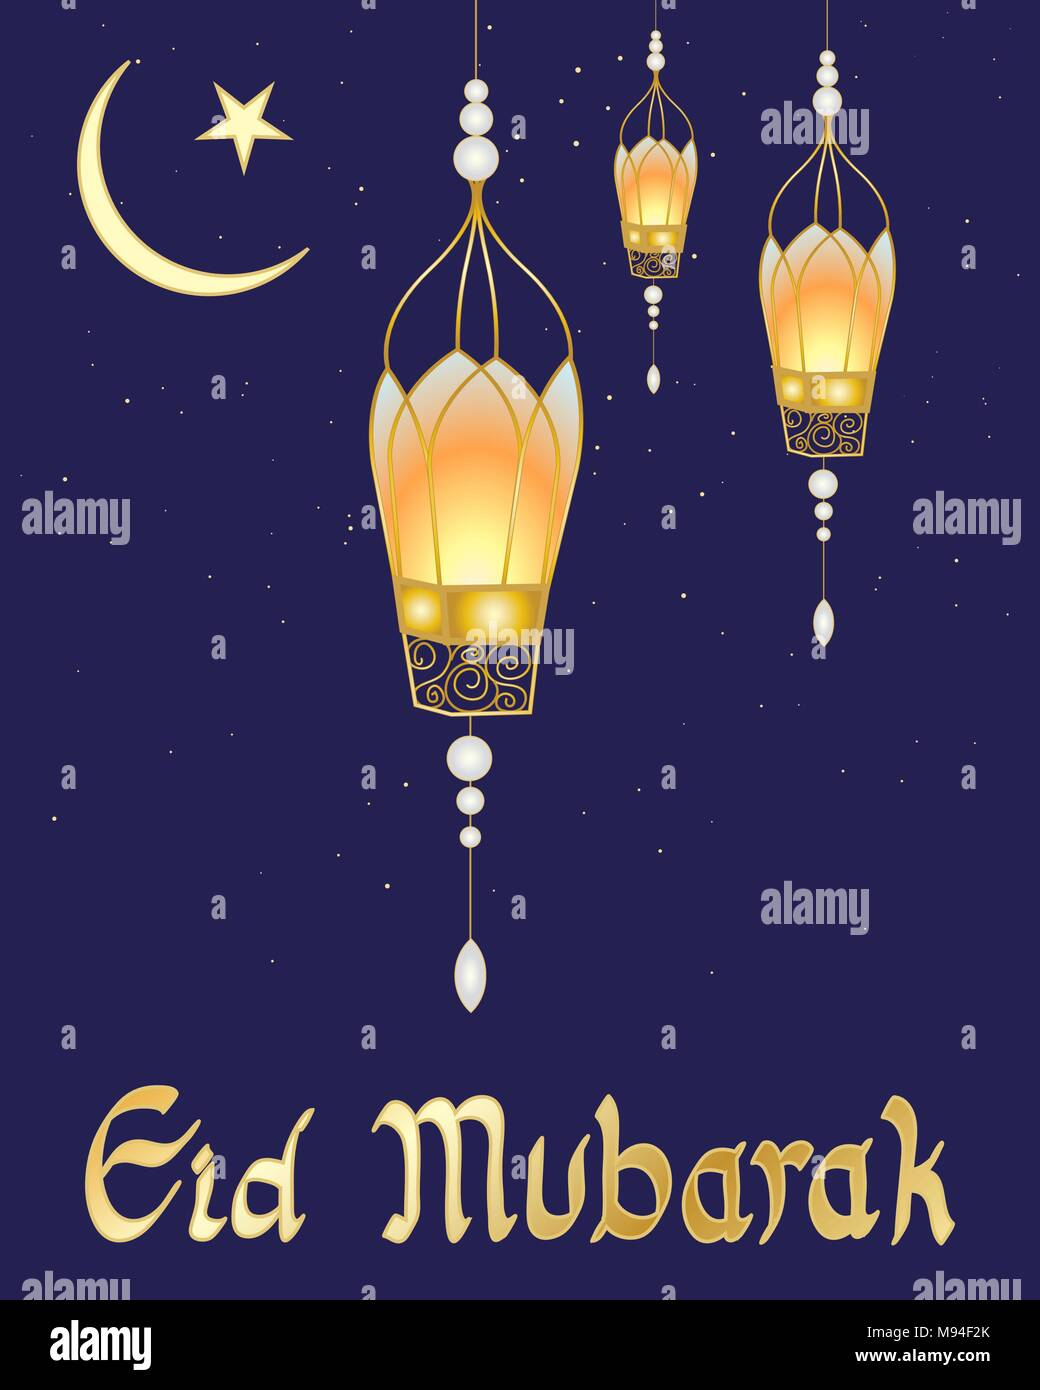 a vector illustration in eps 10 format of a festive Eid card